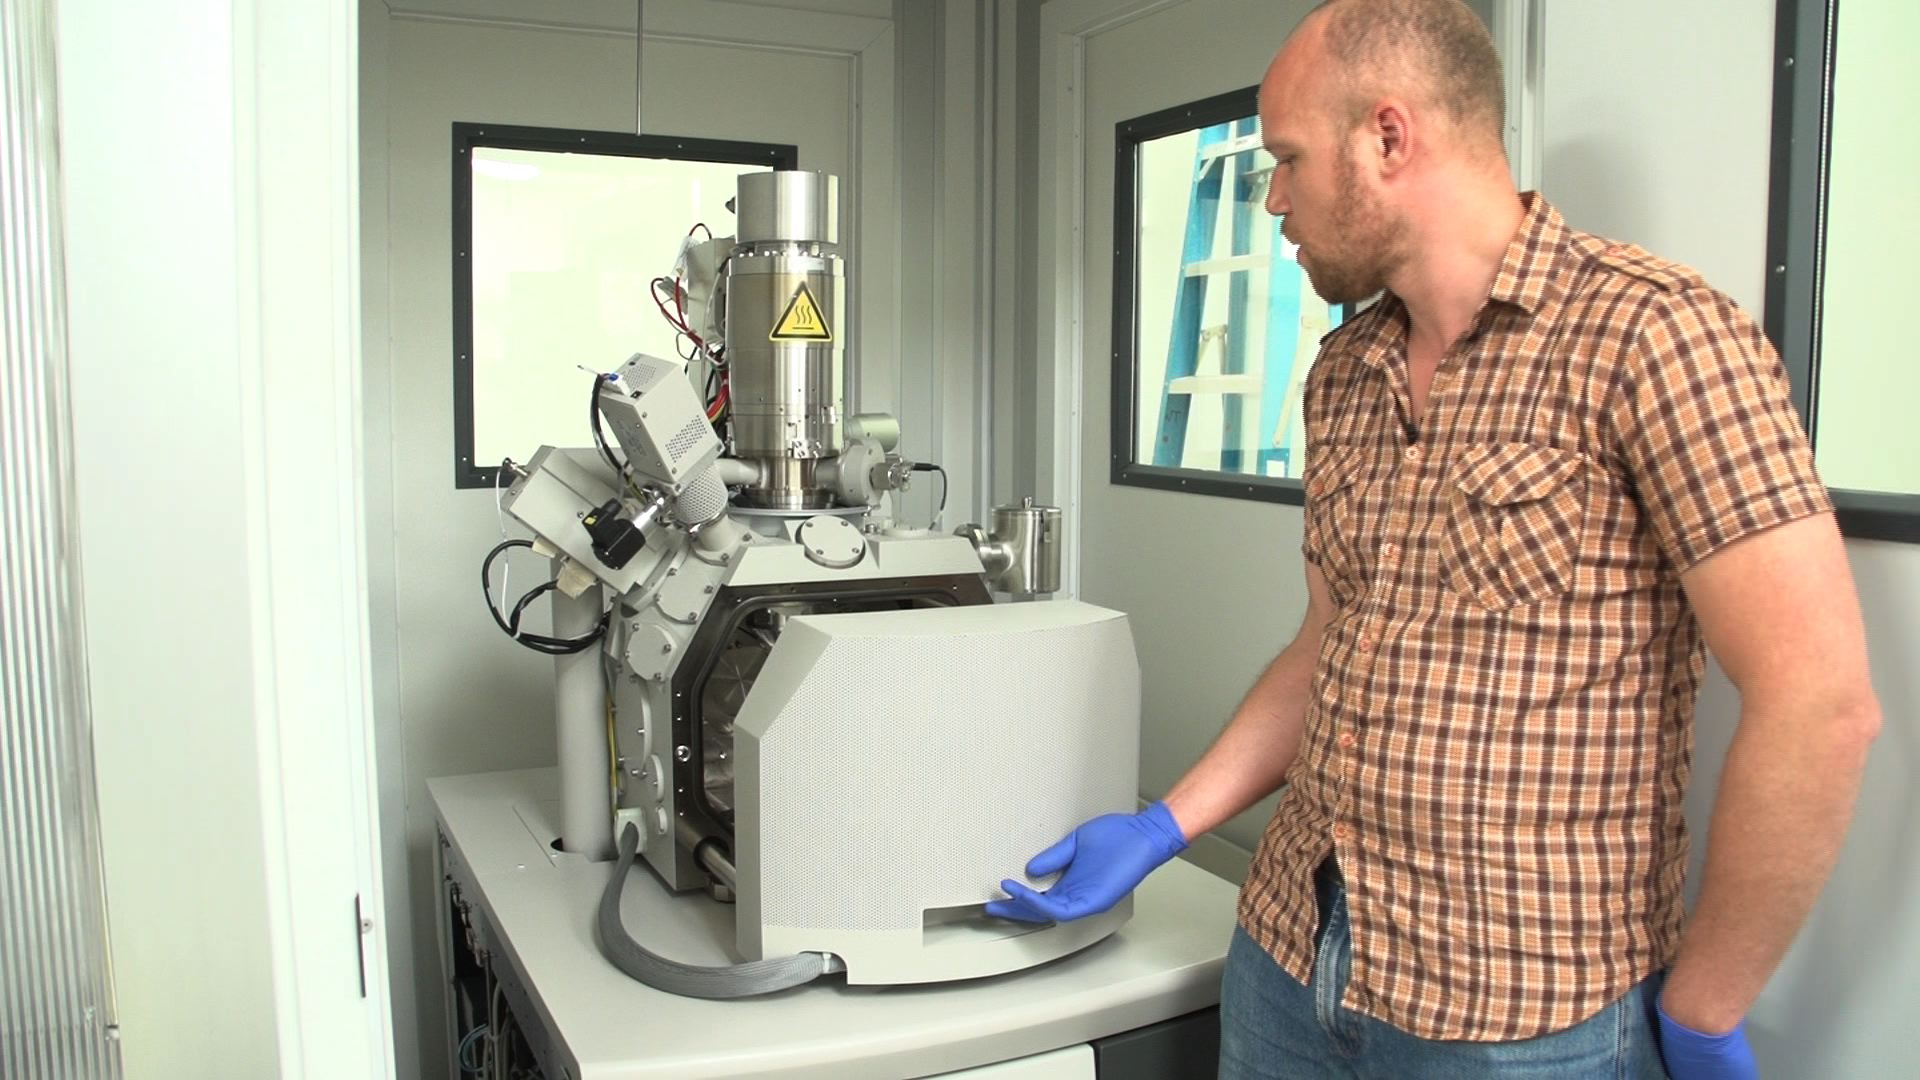 Post-doctoral researcher Chris Harris at the National Institute of Neurological Disorders and Stroke opens the electron microscope, which he uses to examine each neuron in the brain in high resolution. Photo by Rebecca Jacobson